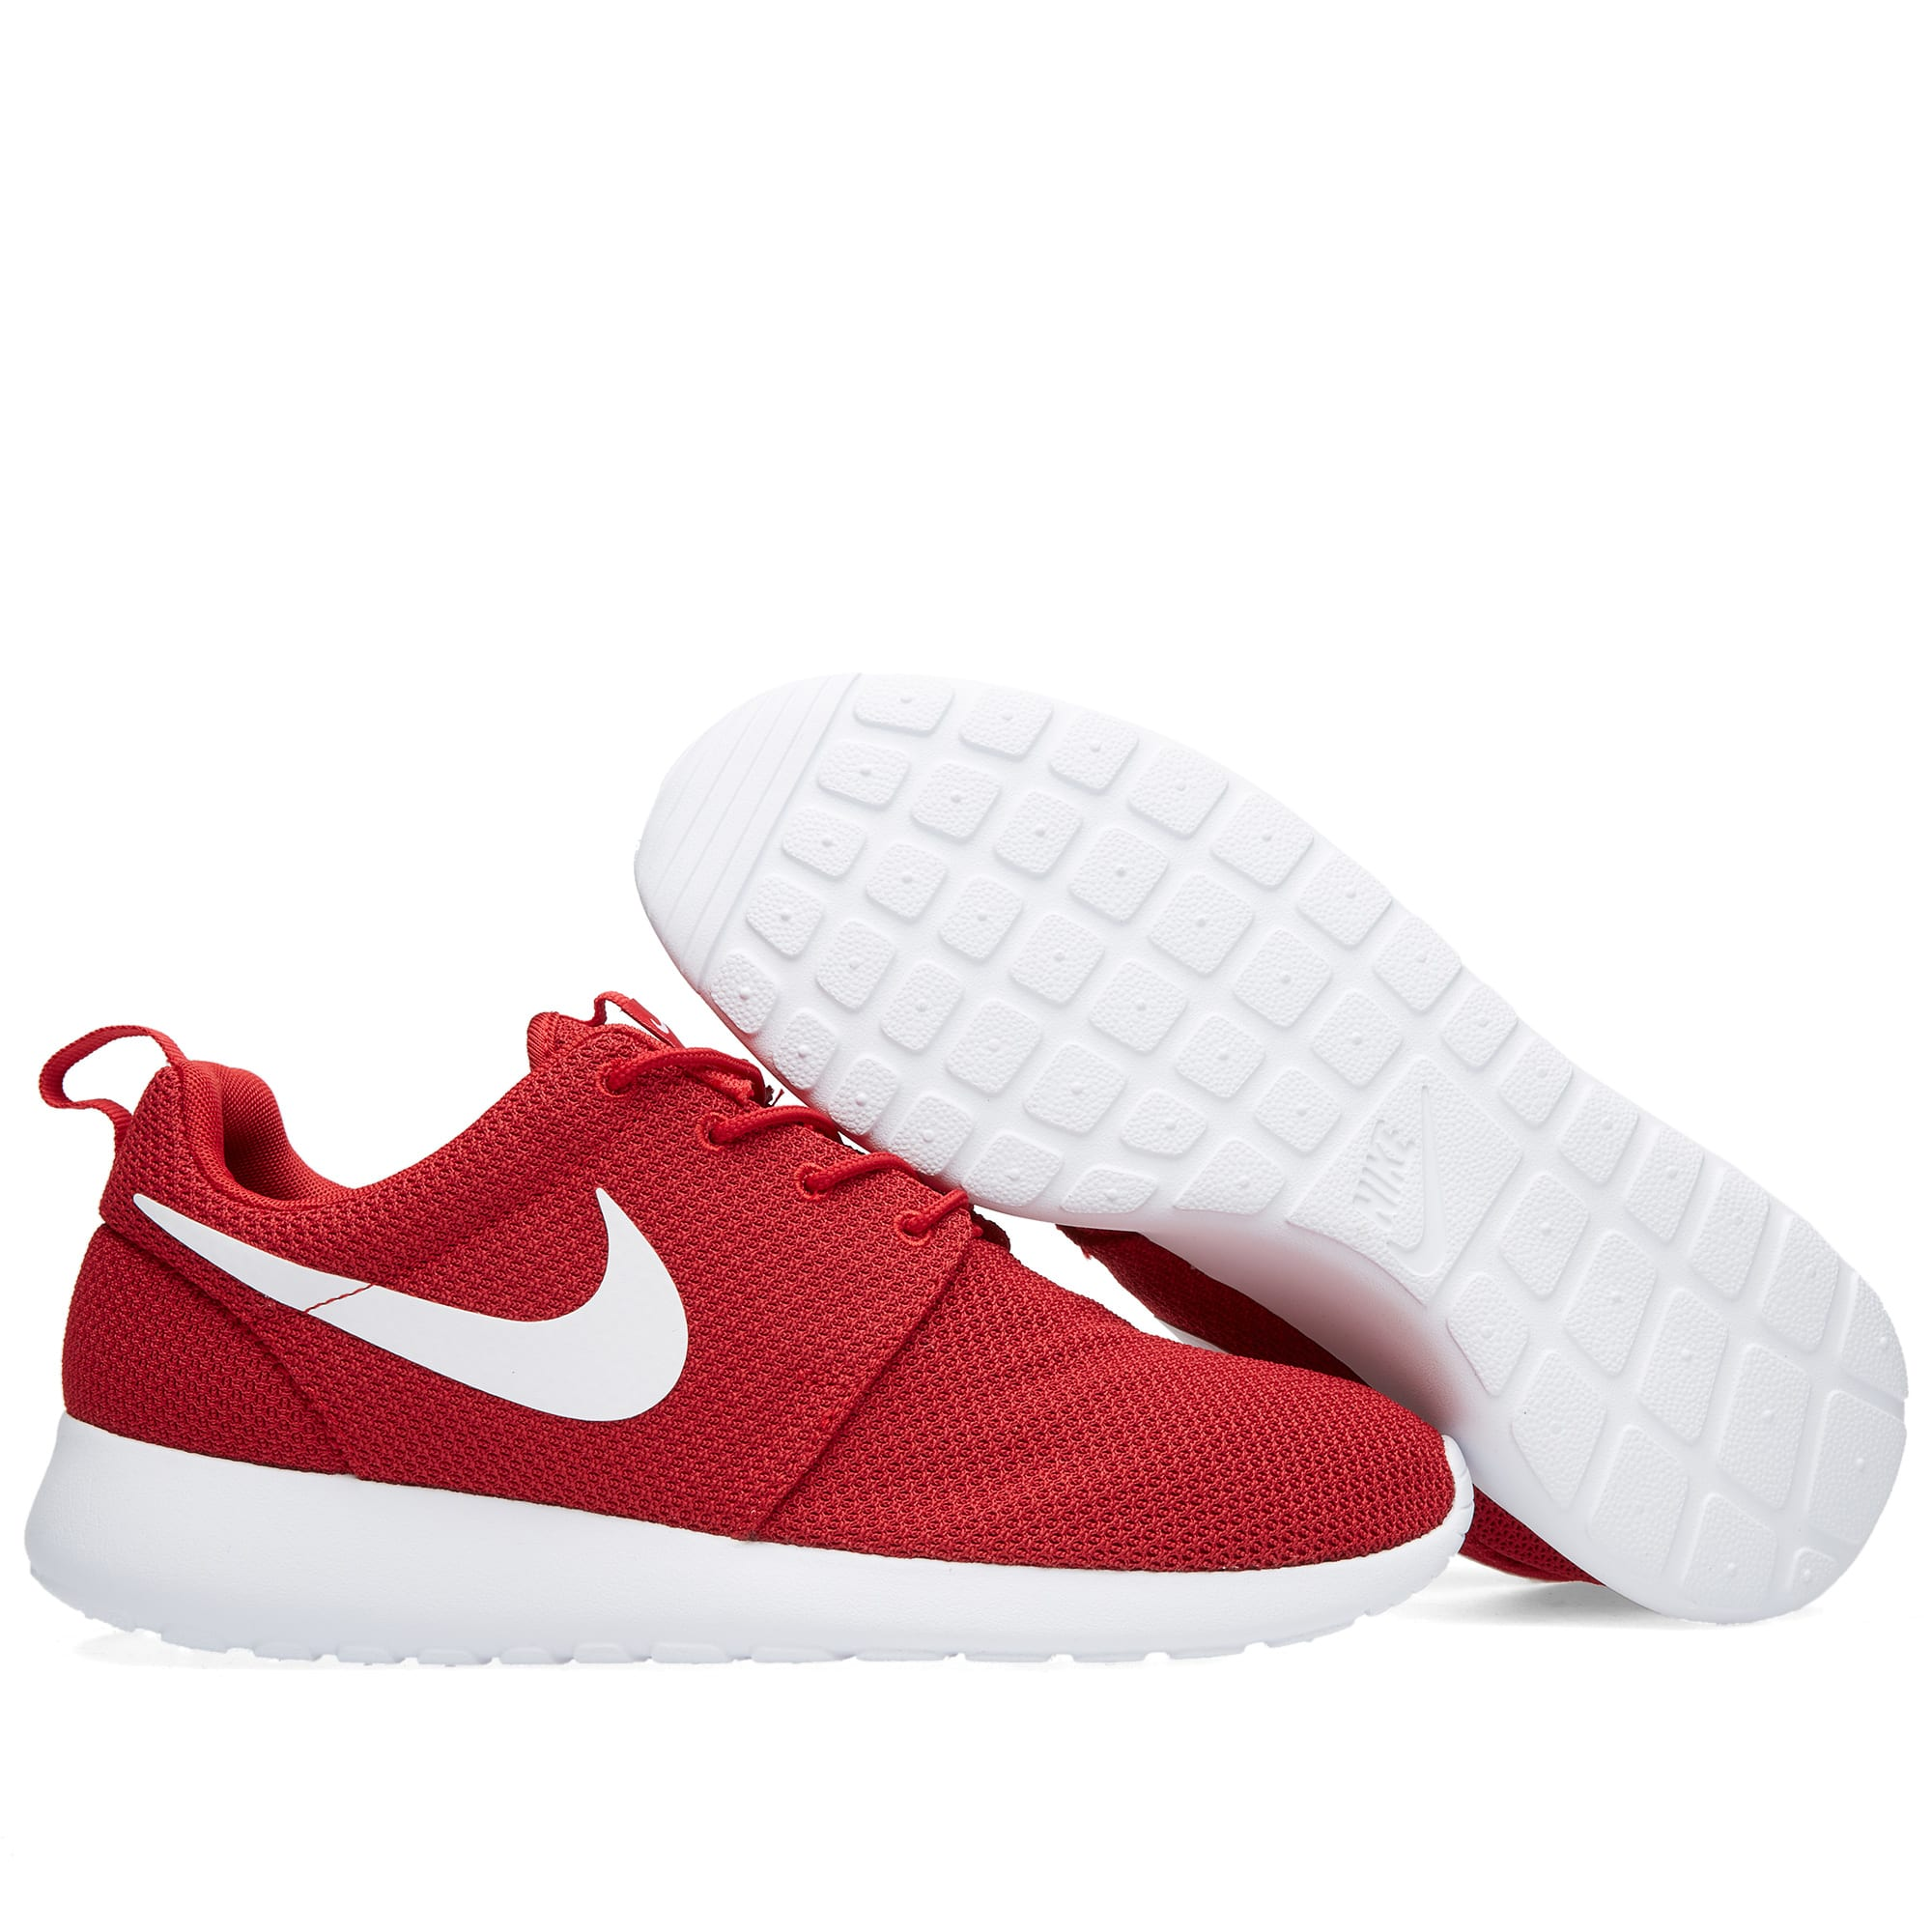 new arrival 10052 4264a Nike Roshe One